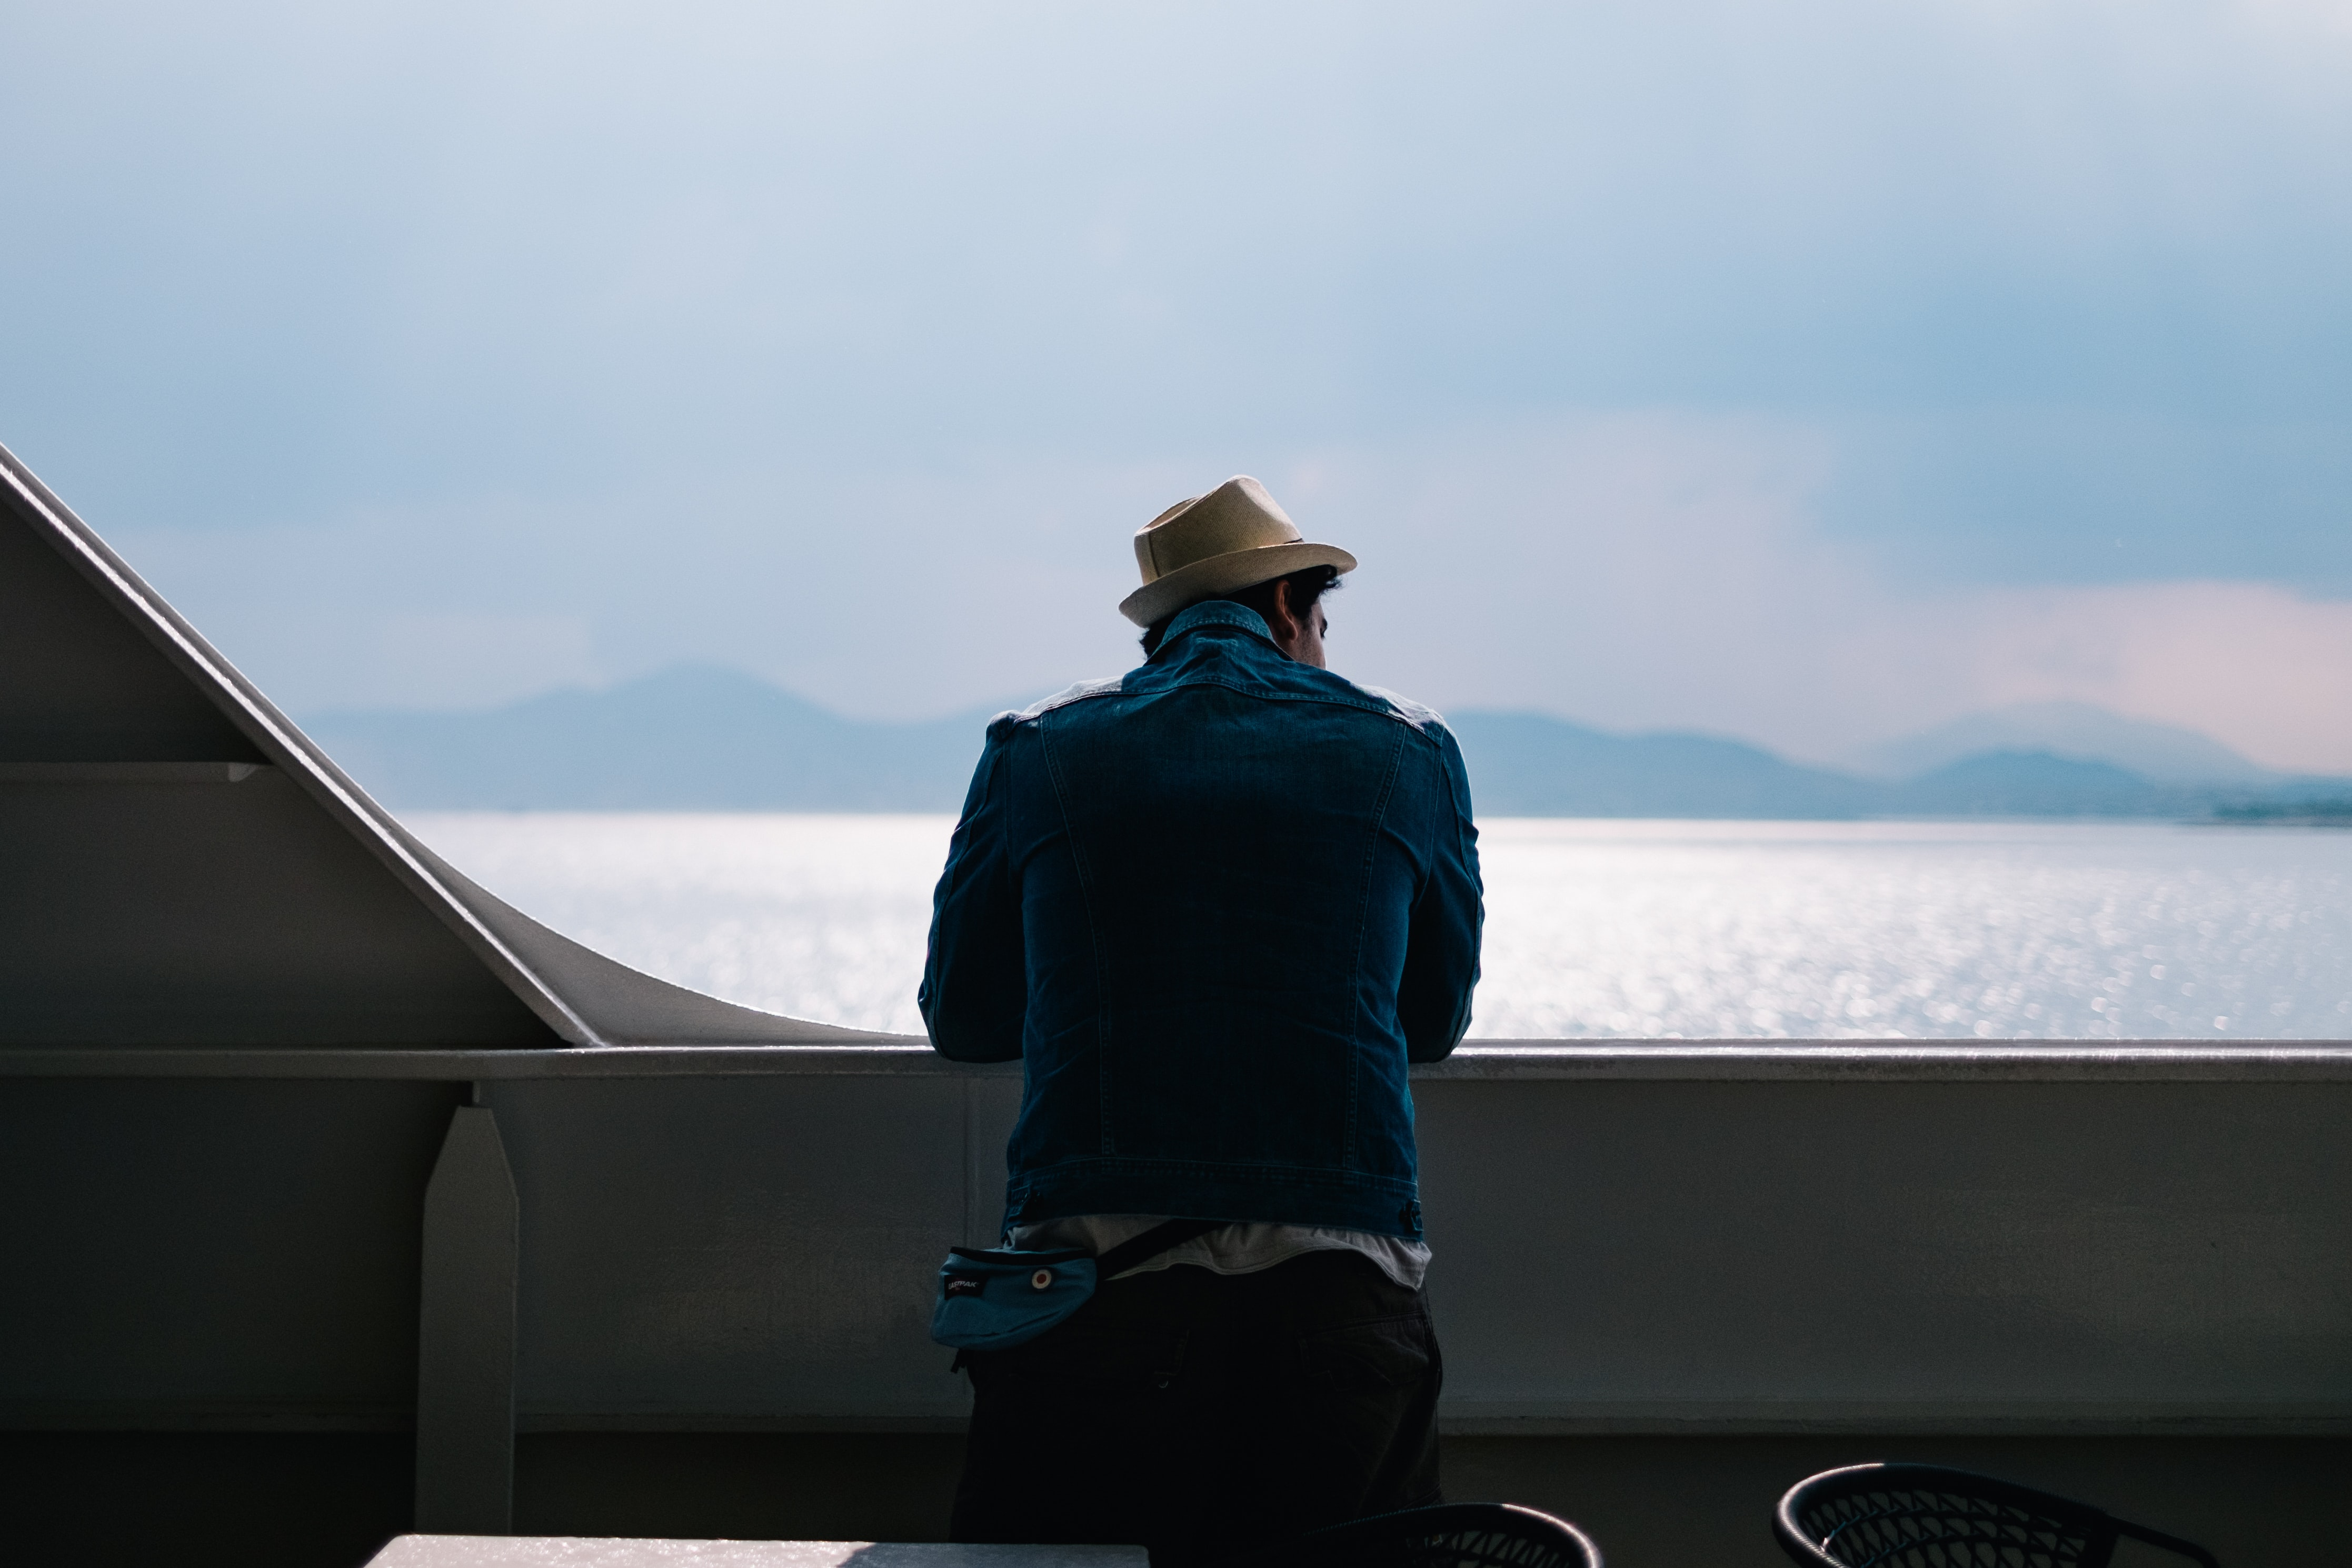 Man in a hat leans over the side of a boat on the water